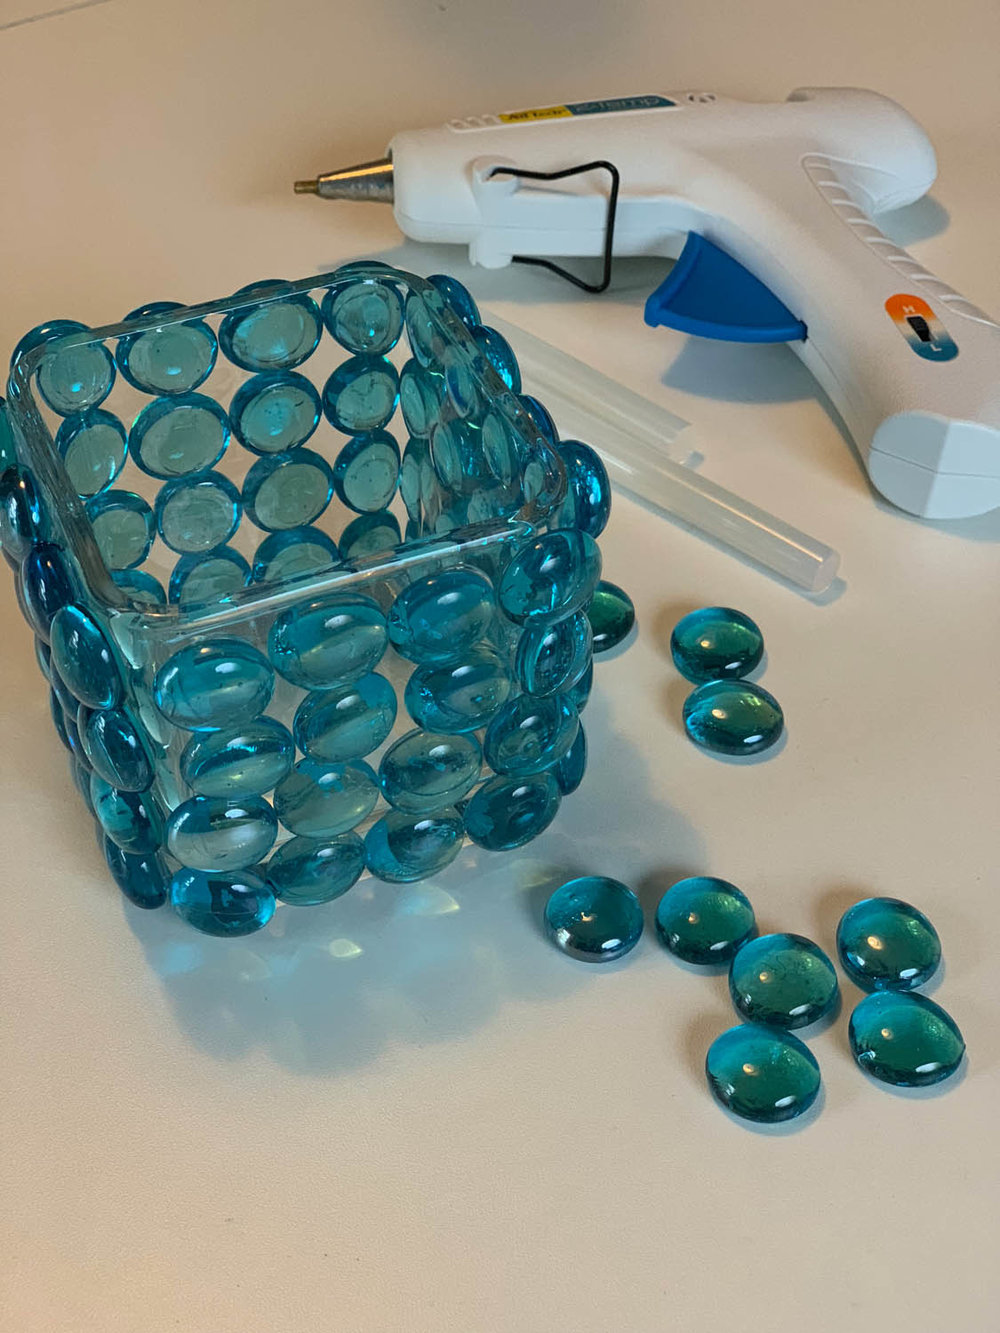 Decorative glass vase covered with blue marble beads with a glue gun